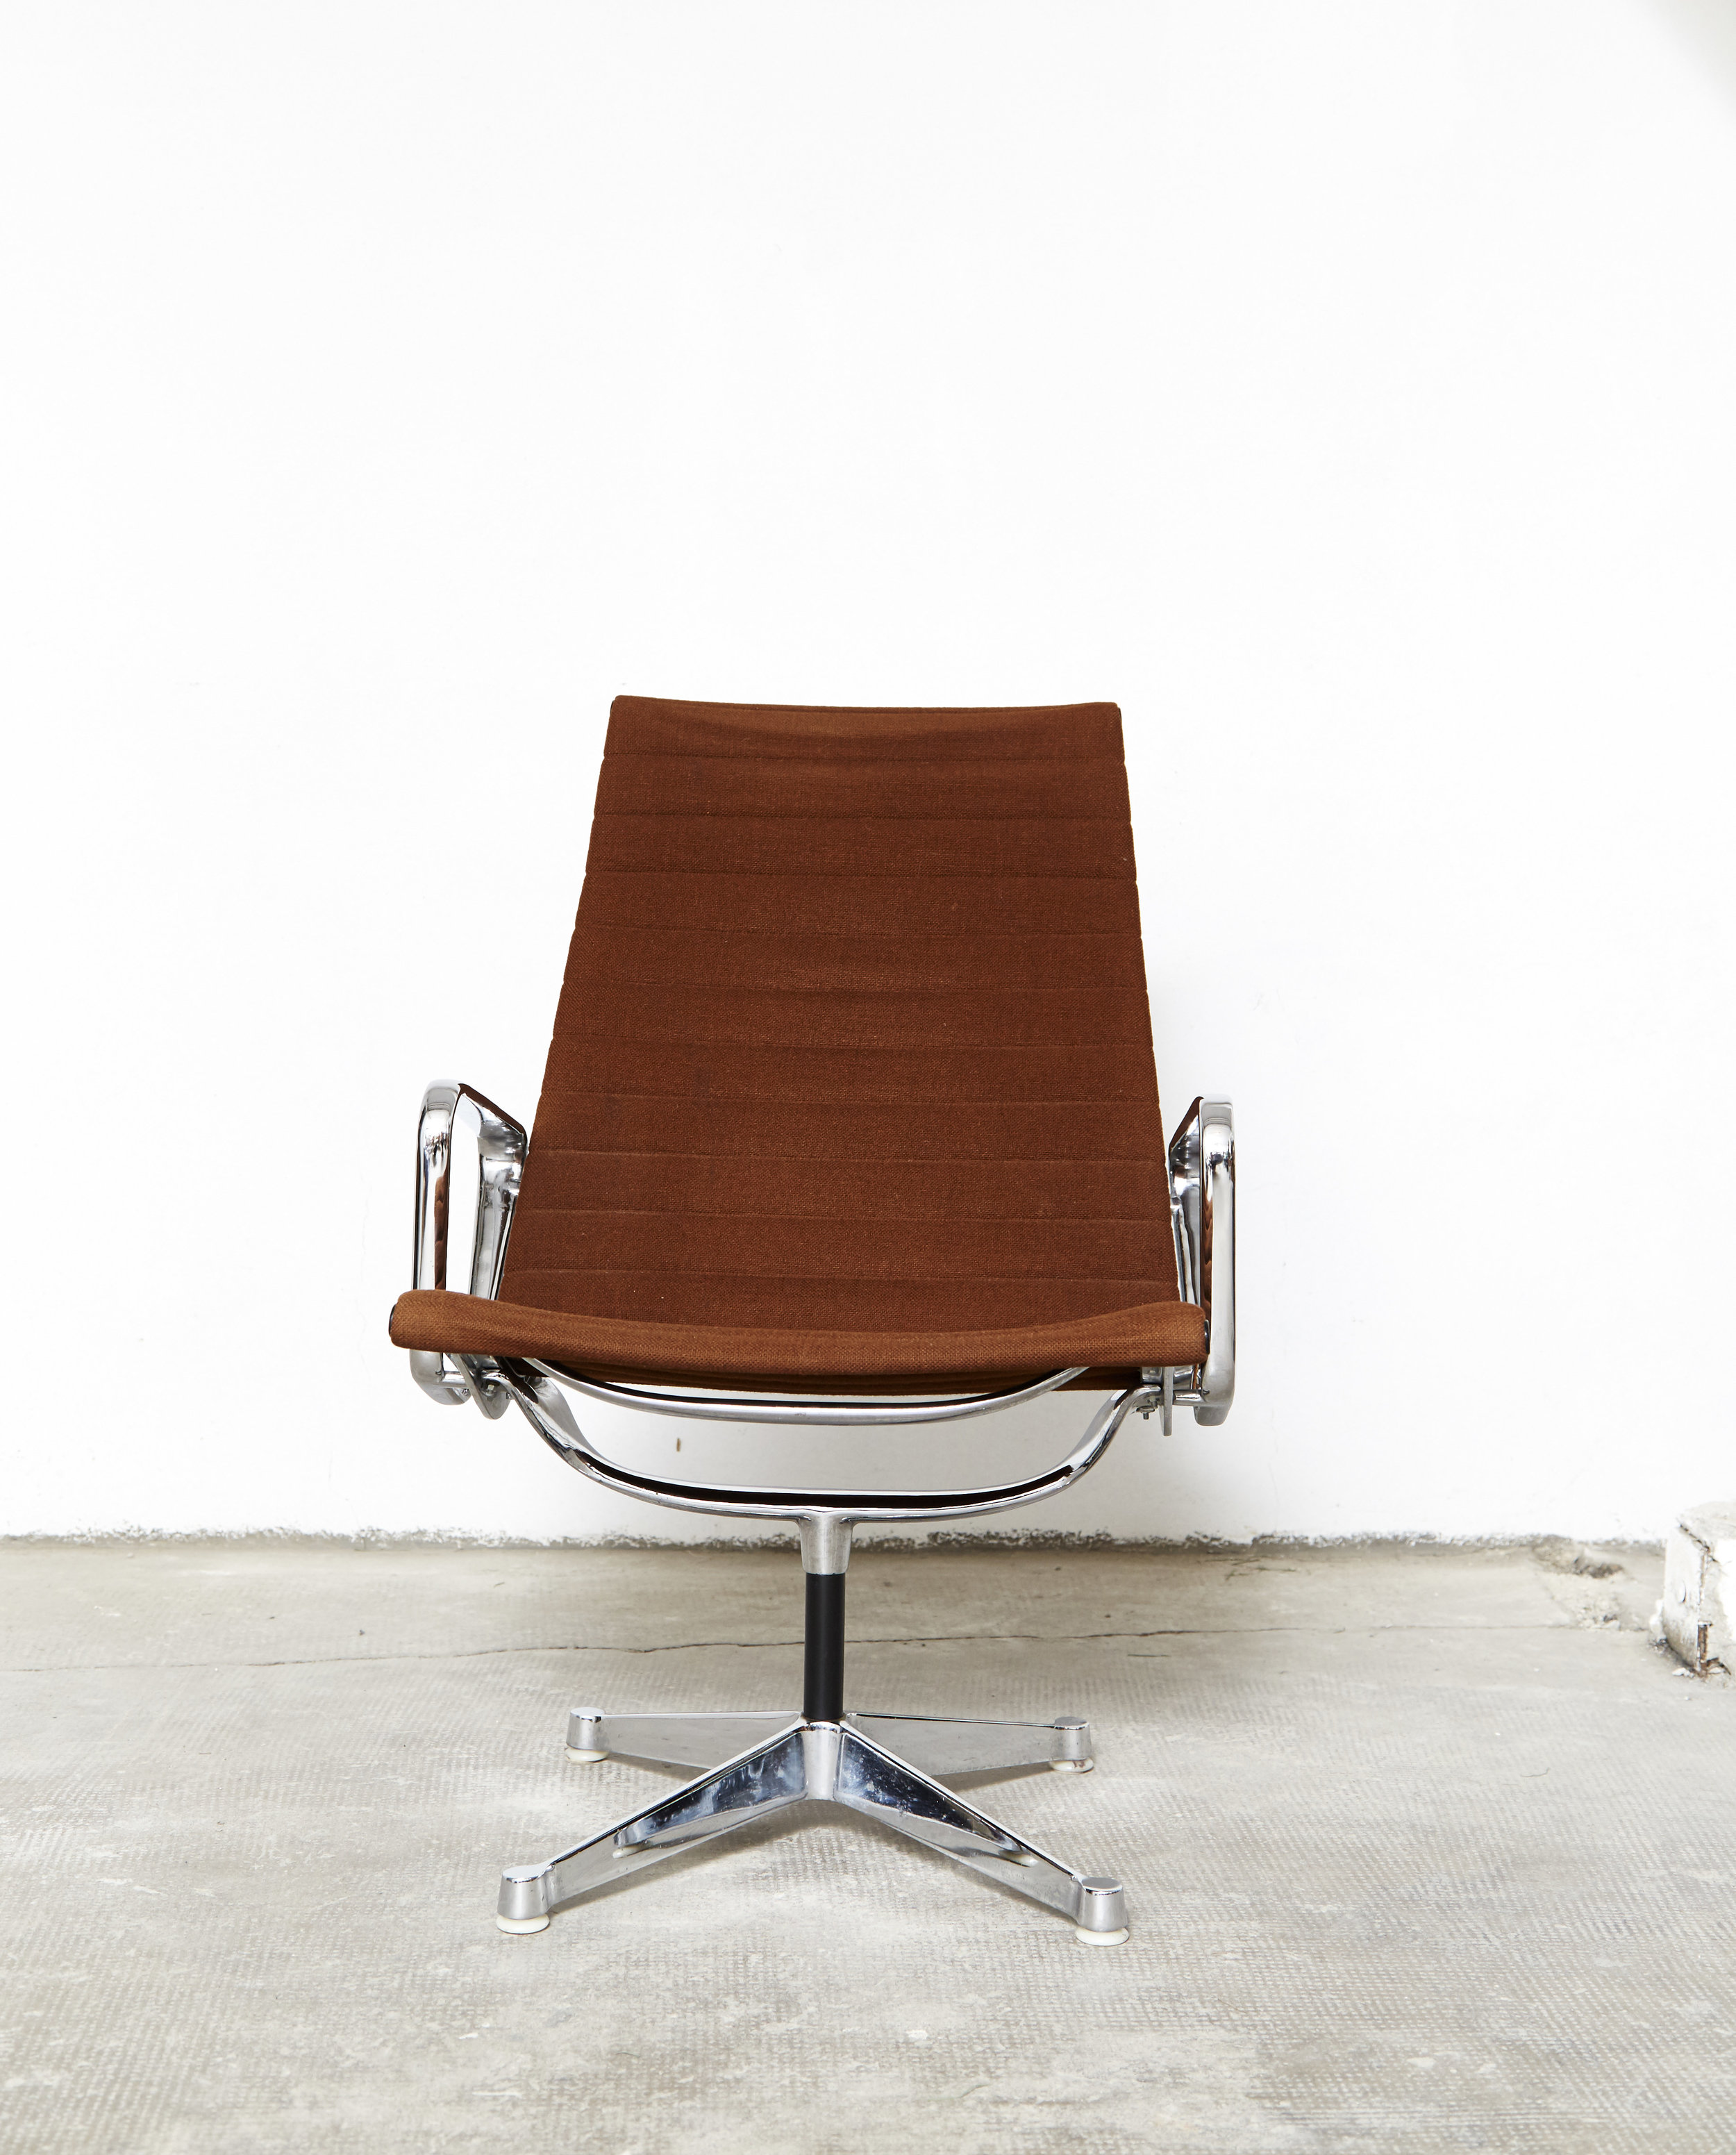 Miller Sessel Sold Charles Ray Eames Lounge Chair Sessel Ea115 For Herman